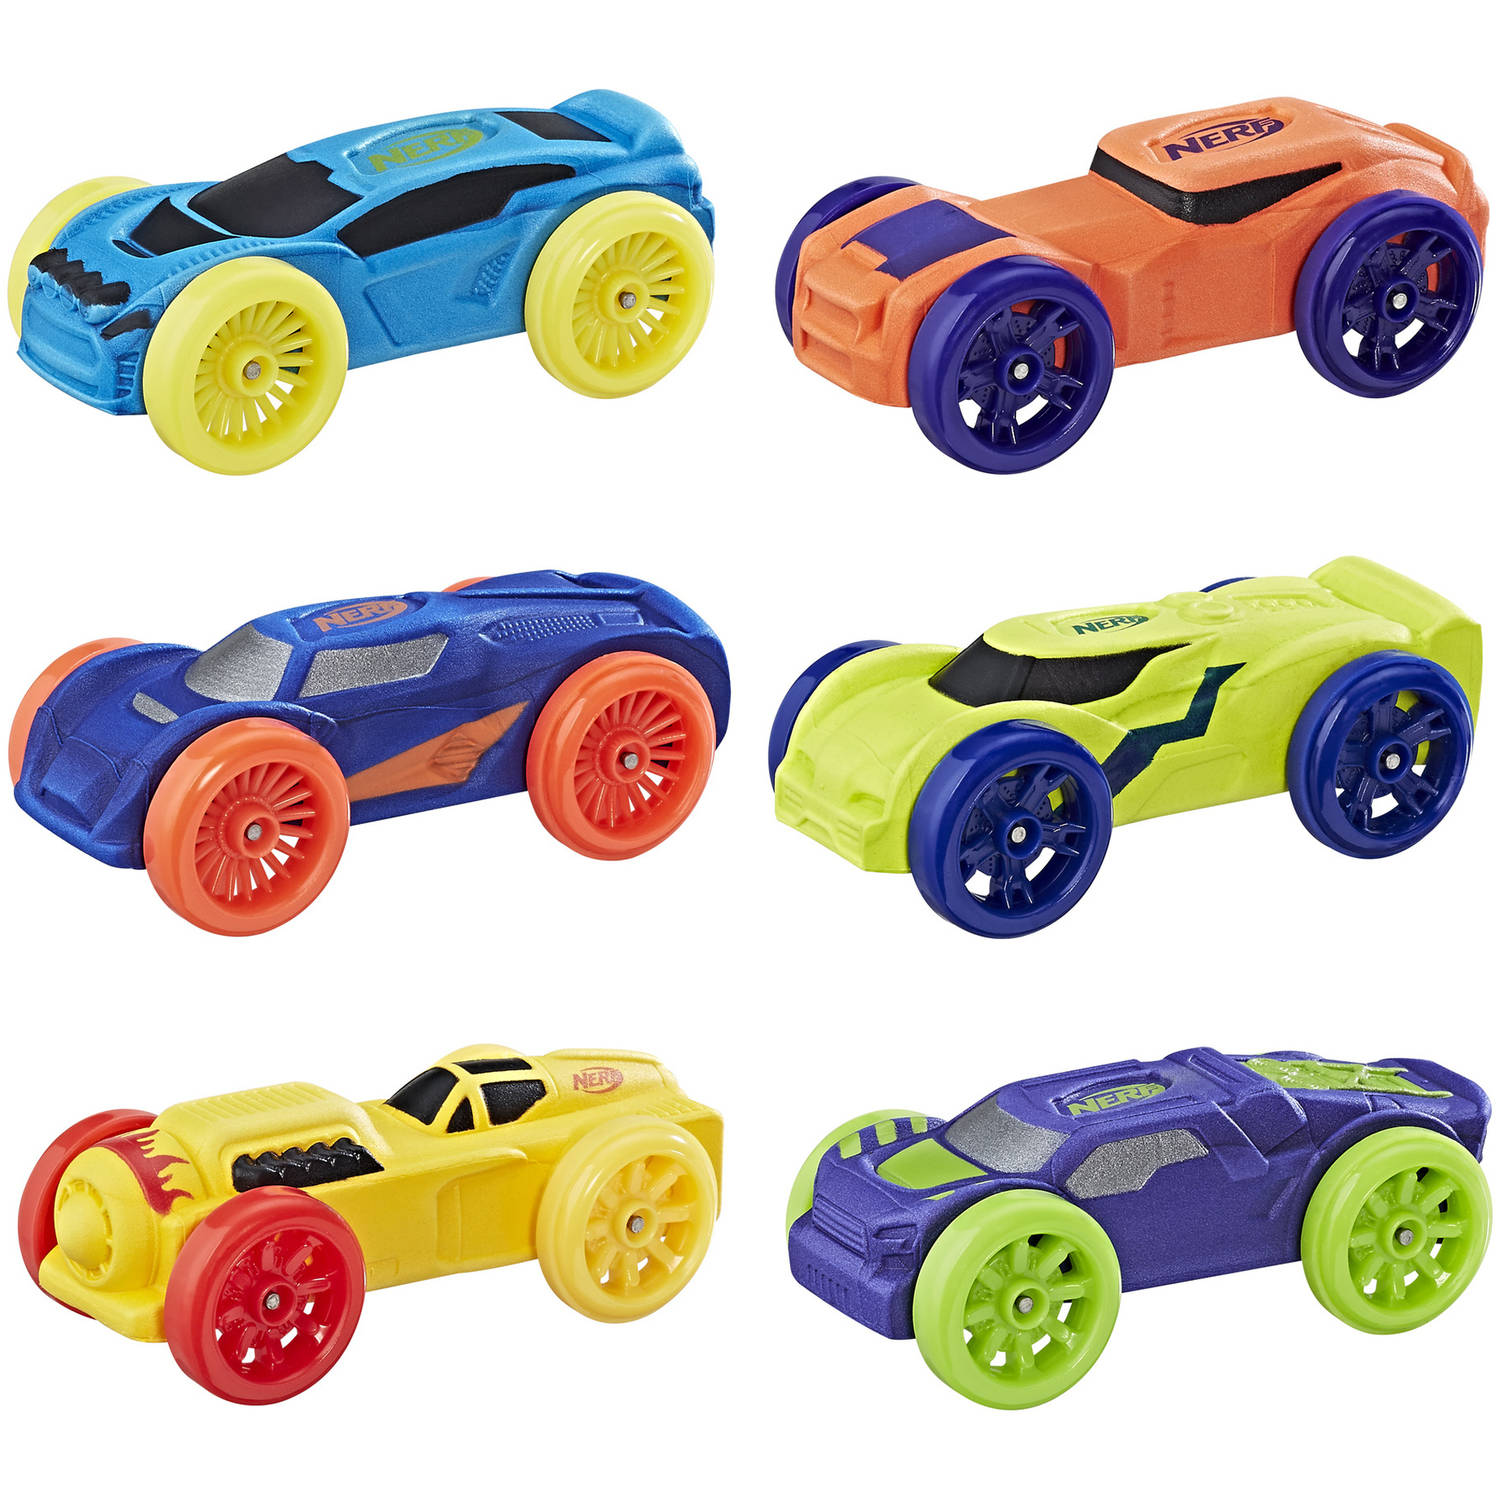 Nerf Nitro Foam Car 6-Pack (Version 2) by Hasbro Inc